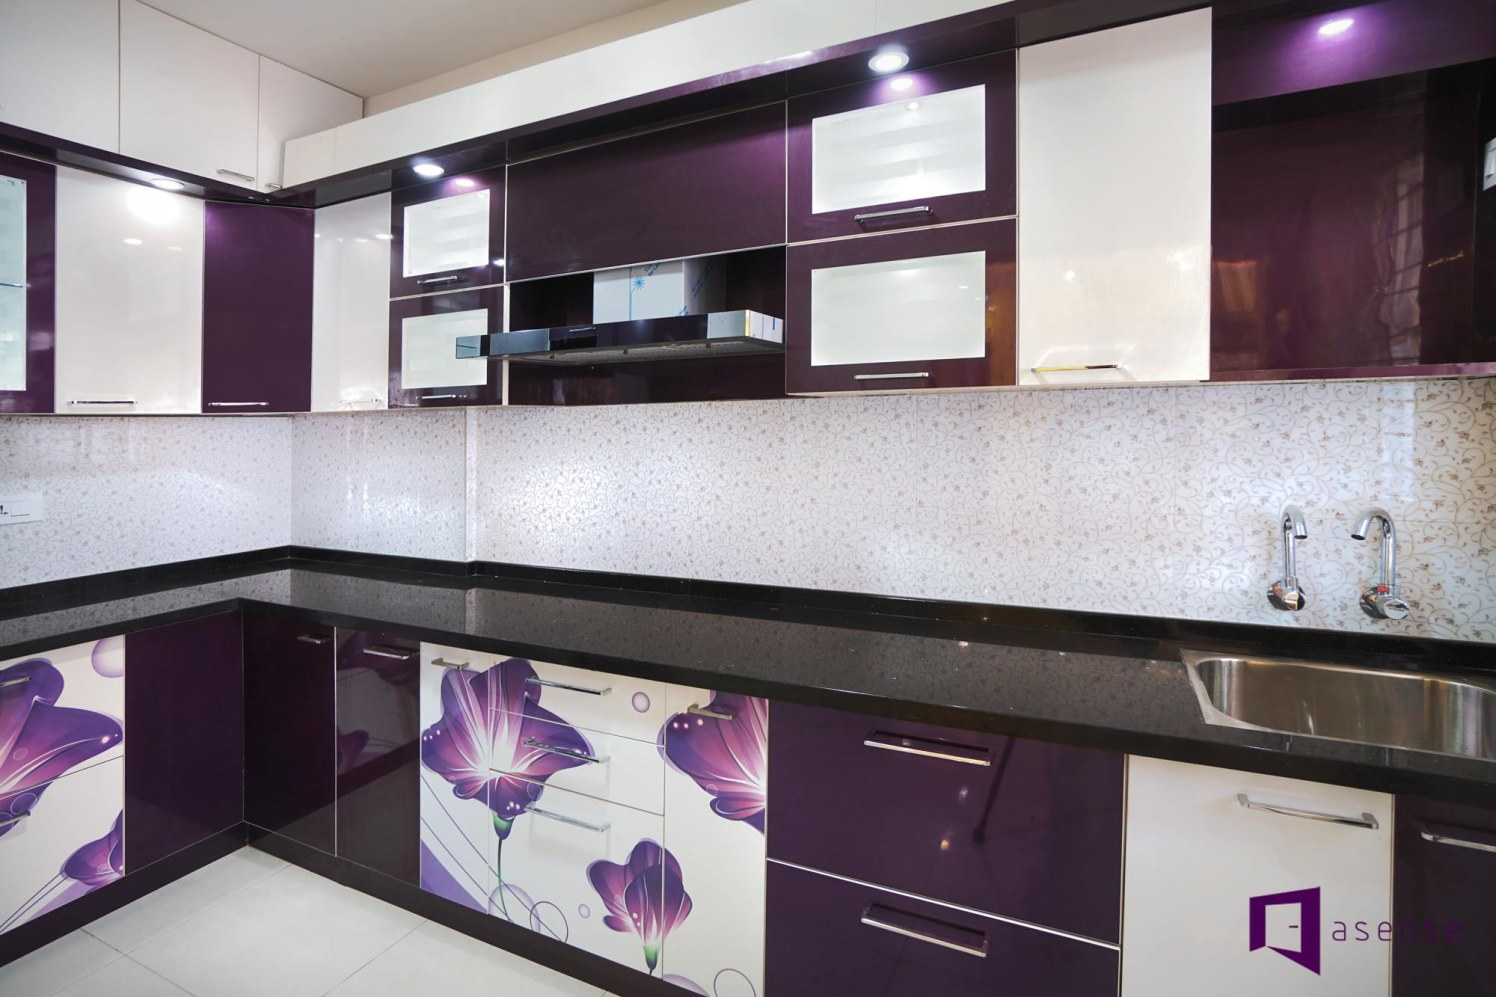 Purple And White Themed Modular Kitchen With Floral Prints by Snigdha Ghosh Modular-kitchen Contemporary | Interior Design Photos & Ideas